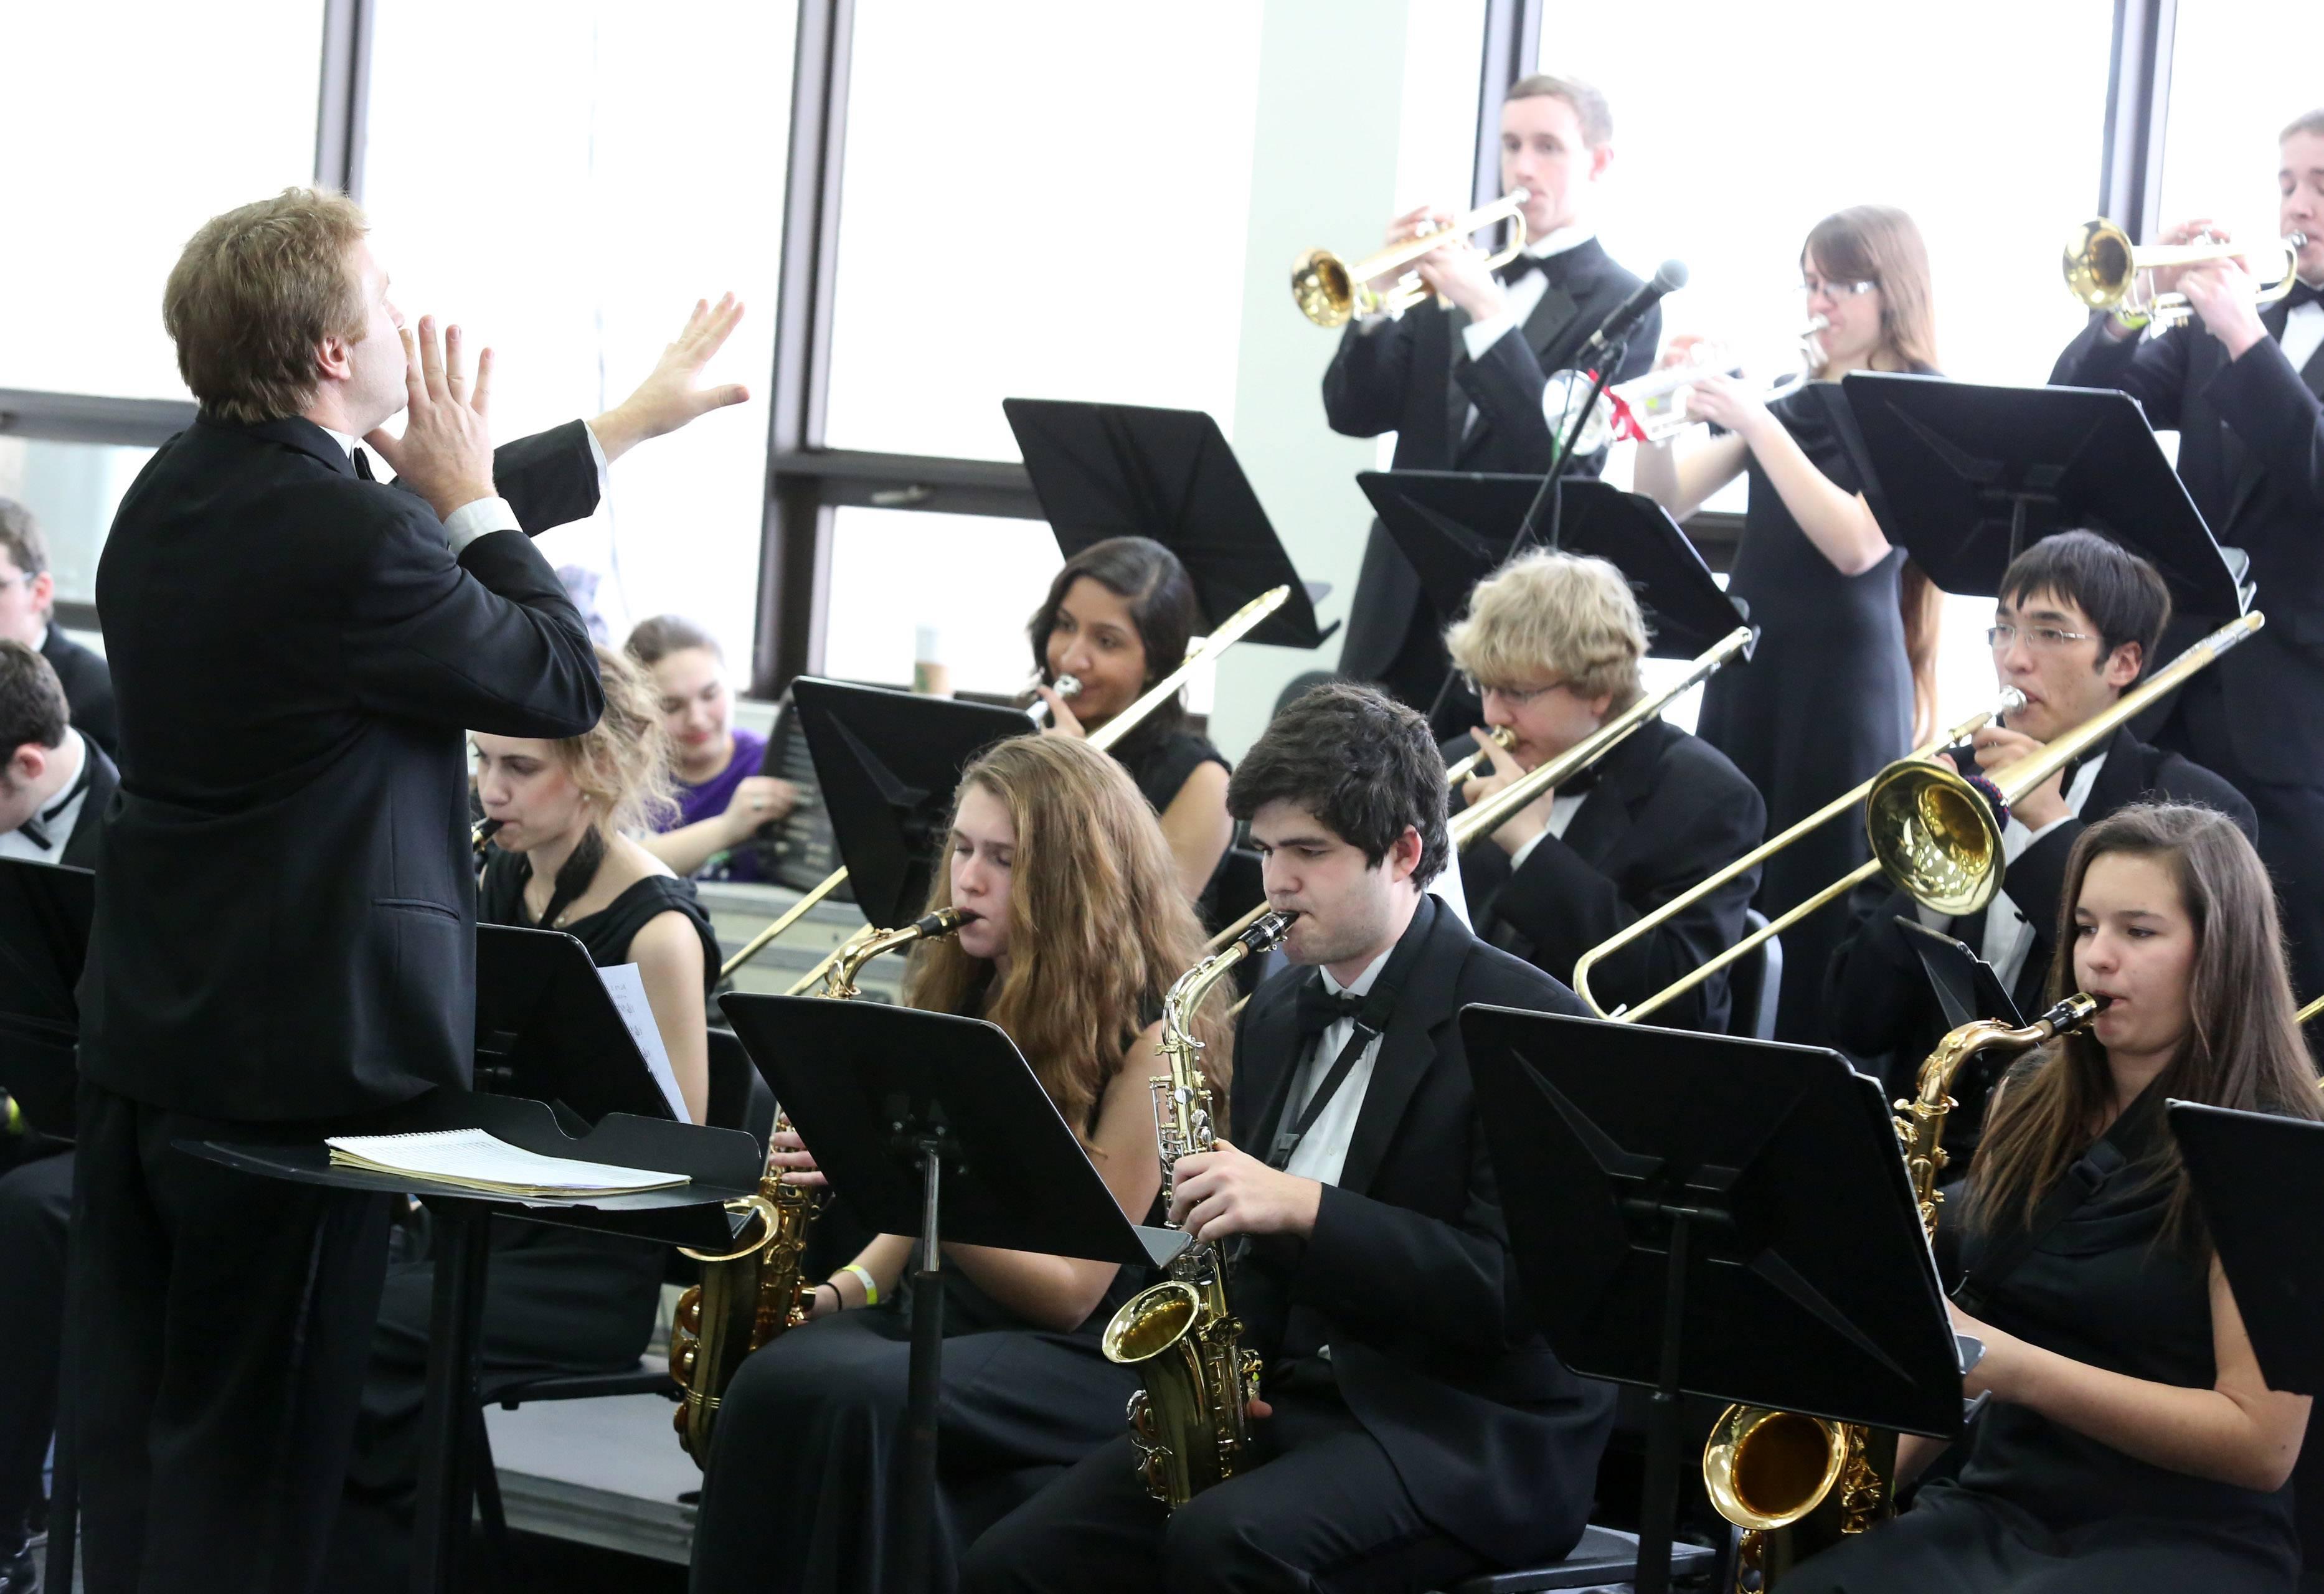 Carmel High School's jazz band, directed by David Wiebers, performs at the 29th annual Jazz in the Meadows program on Saturday in the library at Rolling Meadows High School.